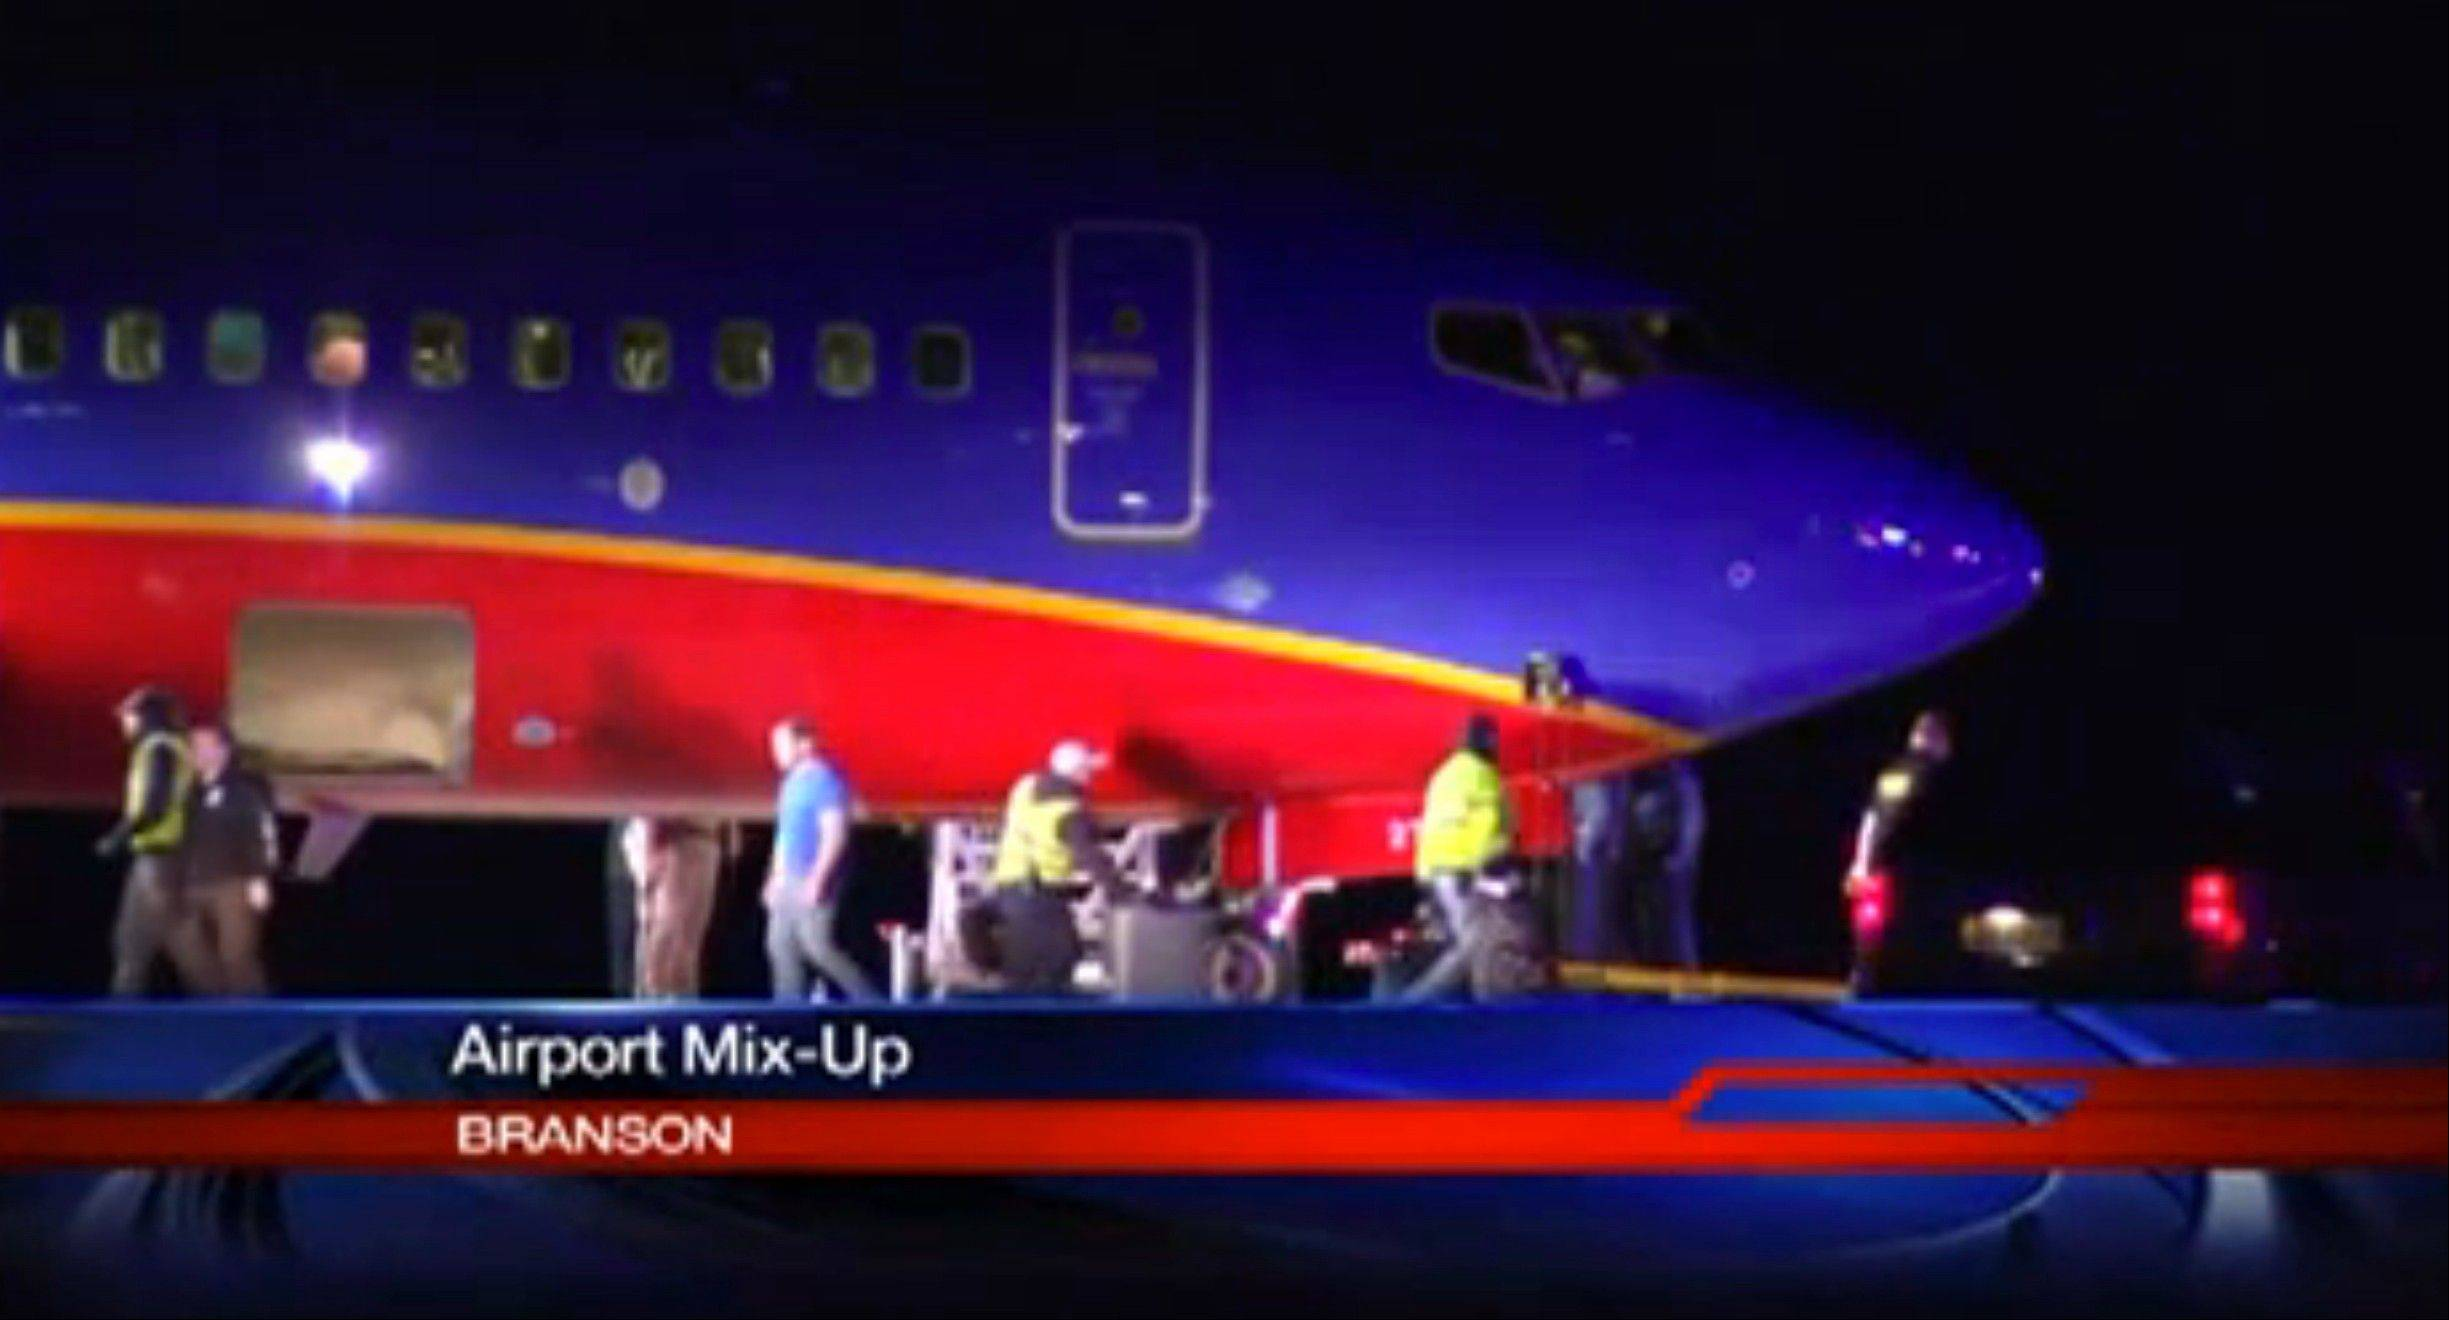 A Southwest Airlines flight that was scheduled to arrive Sunday at Branson Airport in southwest Missouri instead landed at an airport 7 miles north -- with a runway about half the size of the intended destination.